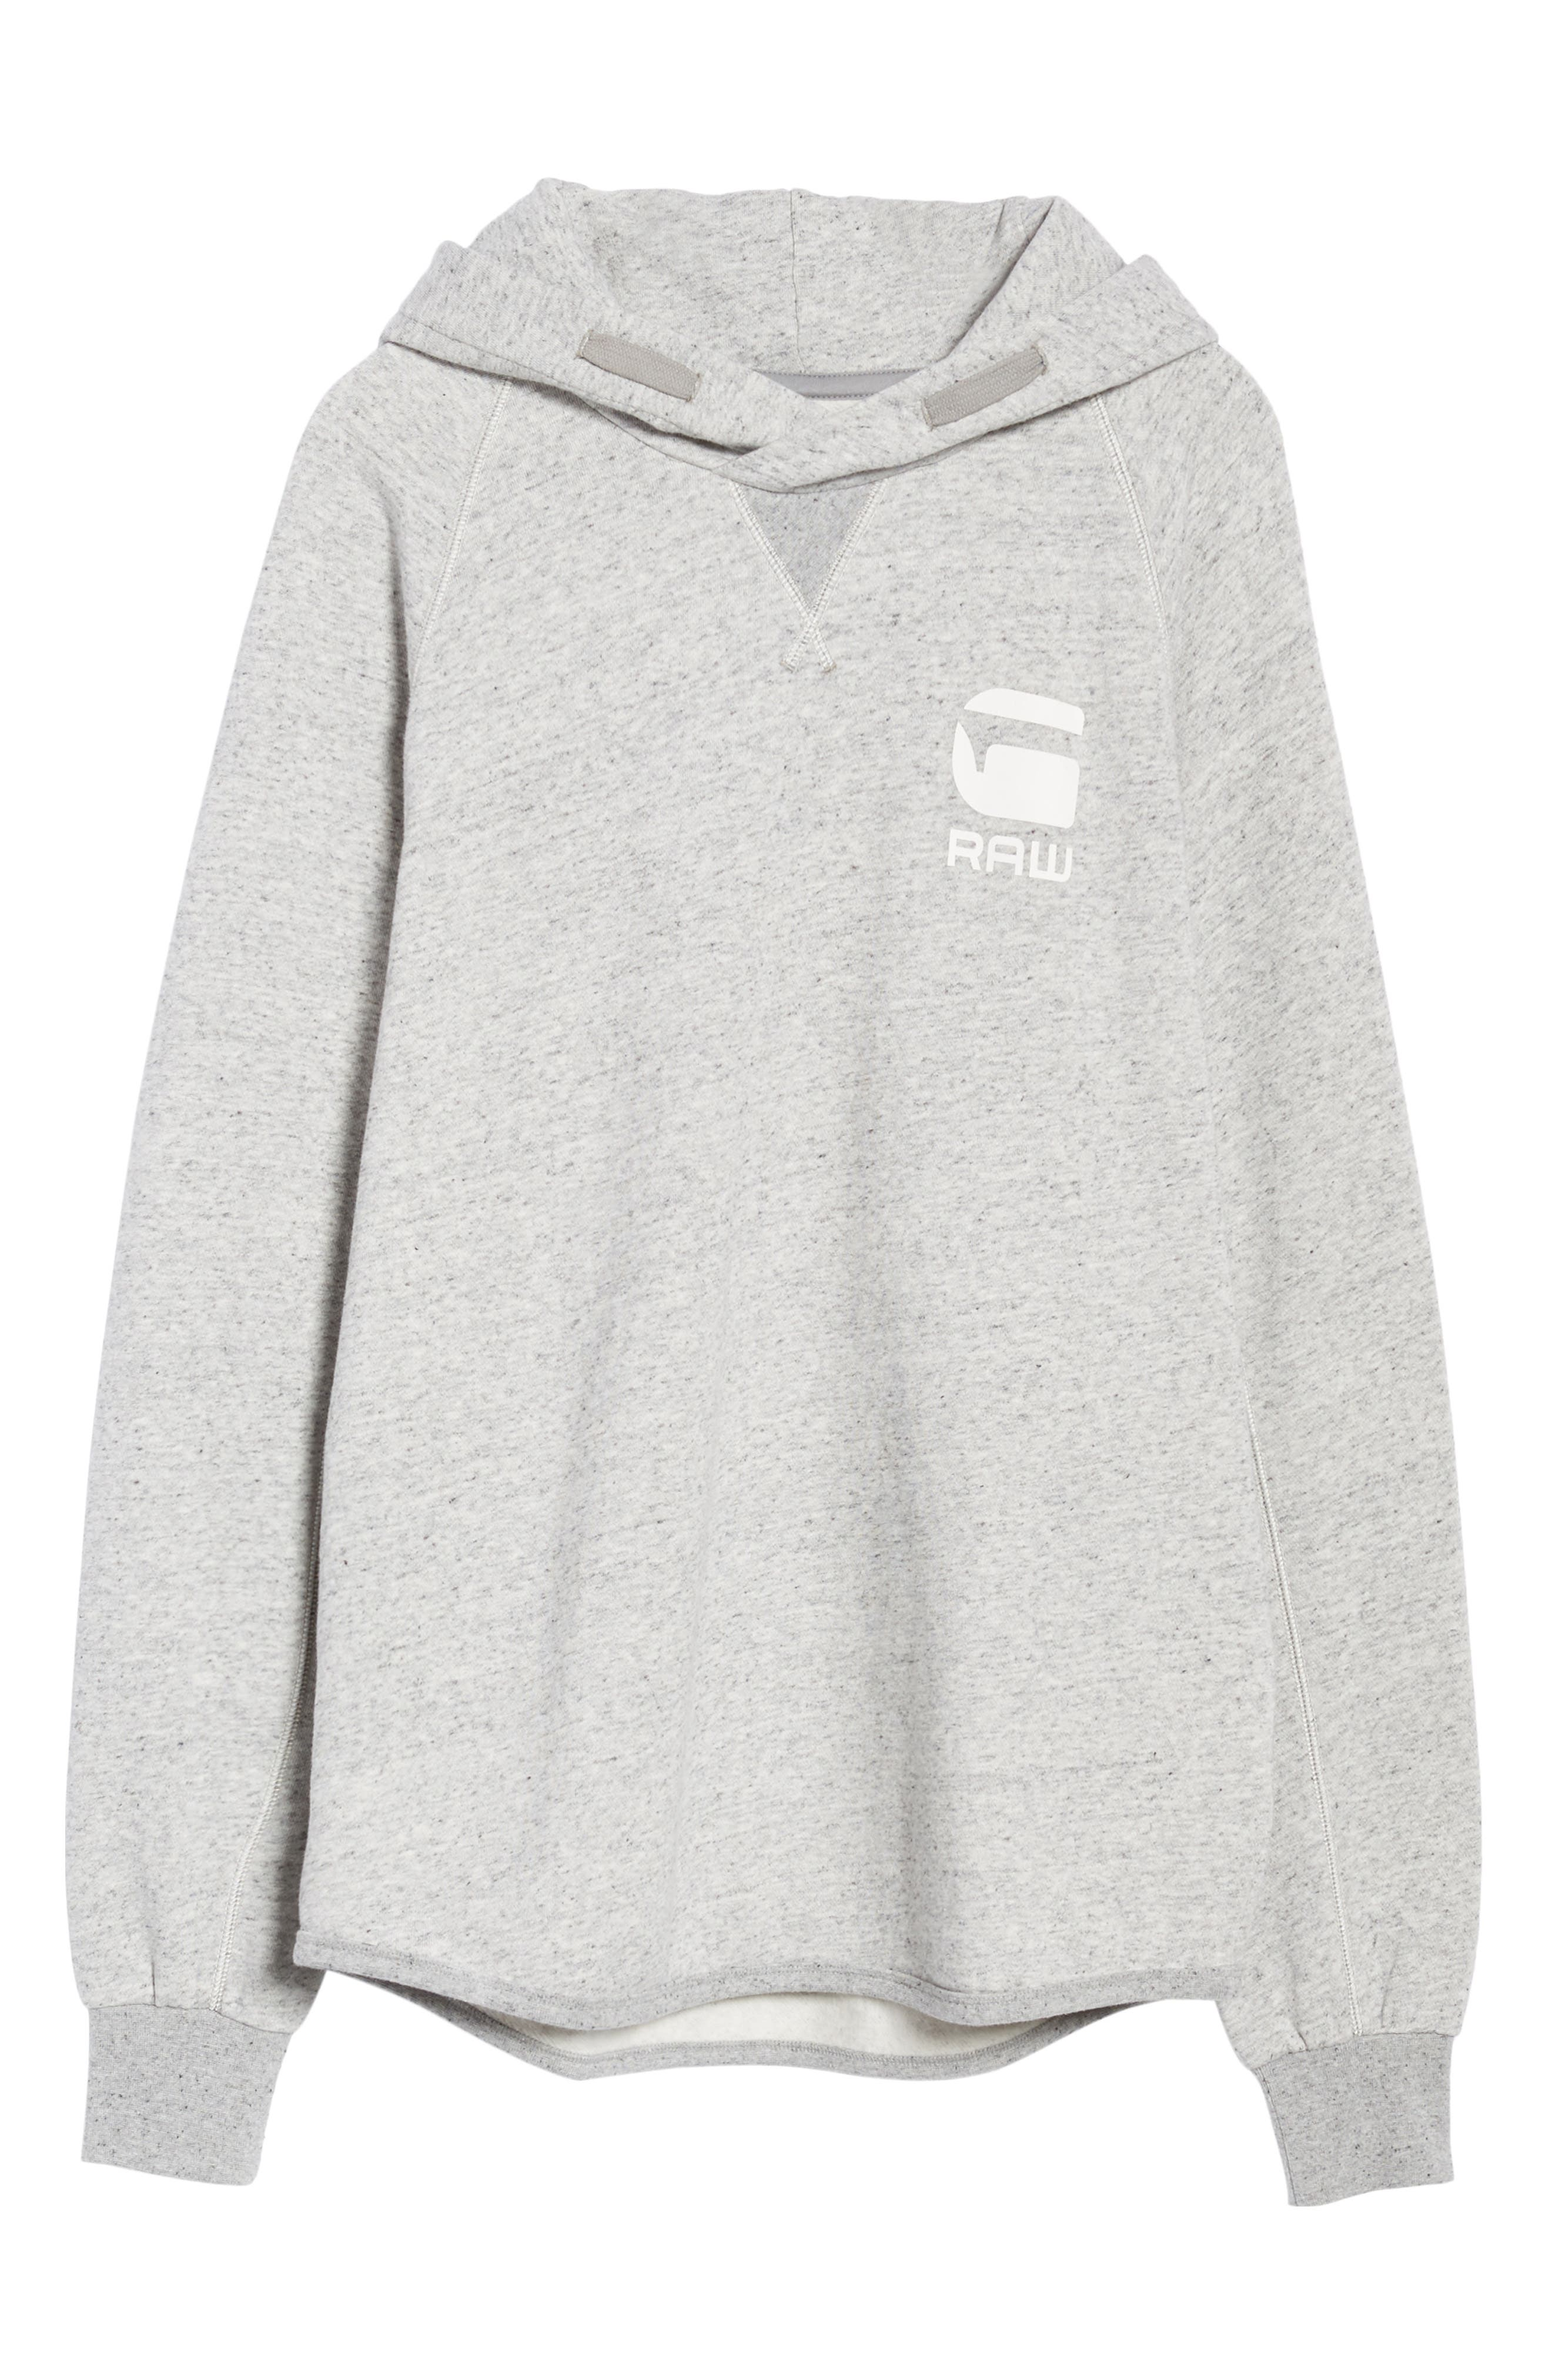 Callow Pullover Hoodie,                             Alternate thumbnail 6, color,                             Grey Heather